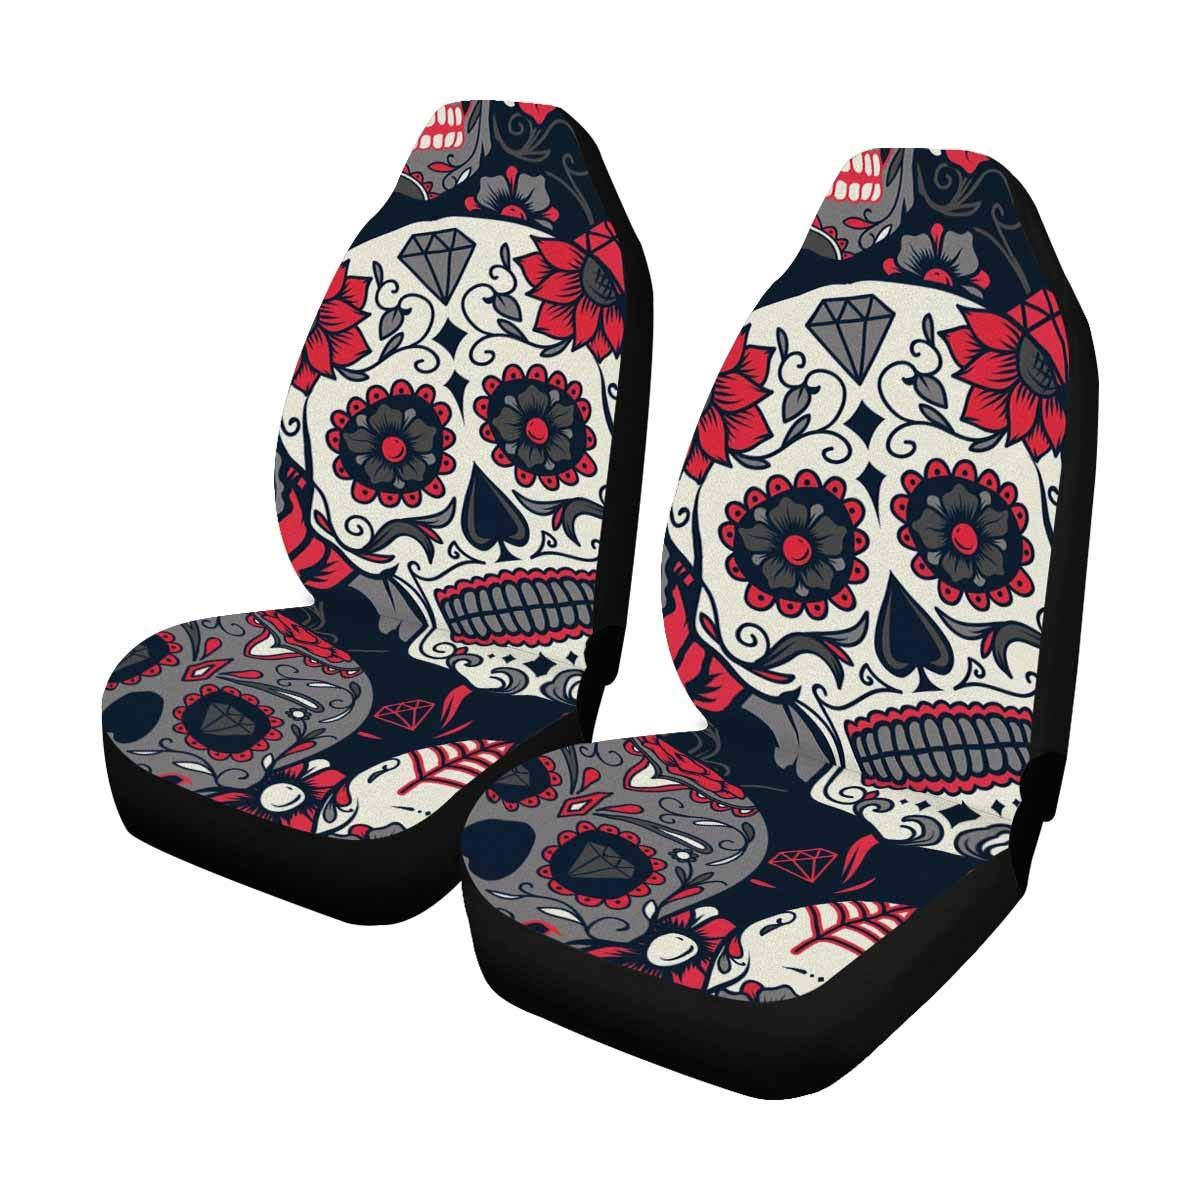 Surprising Interestprint Day Of The Dead Sugar Skull With Floral Auto Evergreenethics Interior Chair Design Evergreenethicsorg